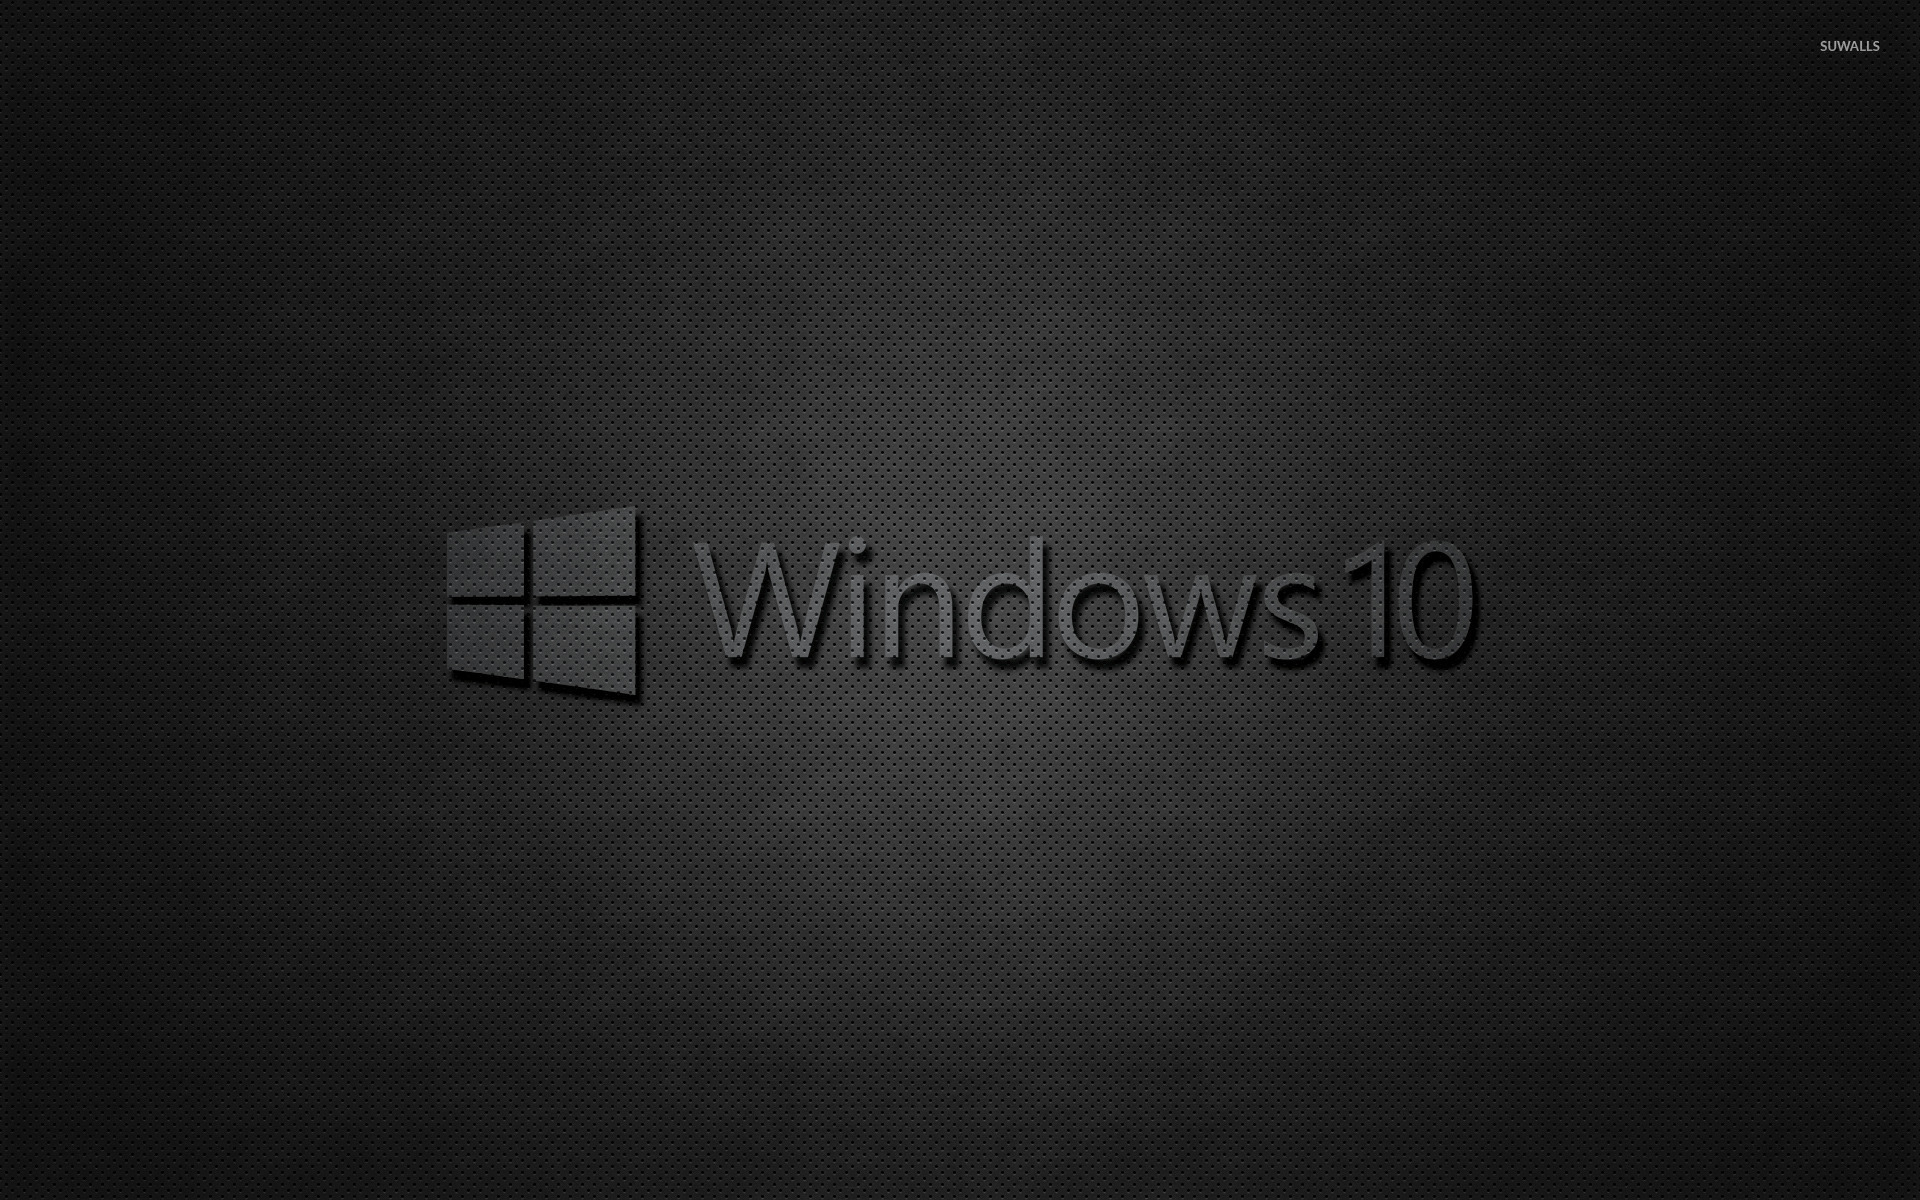 Windows 10 Transparent Text Logo On Black Wallpaper Computer